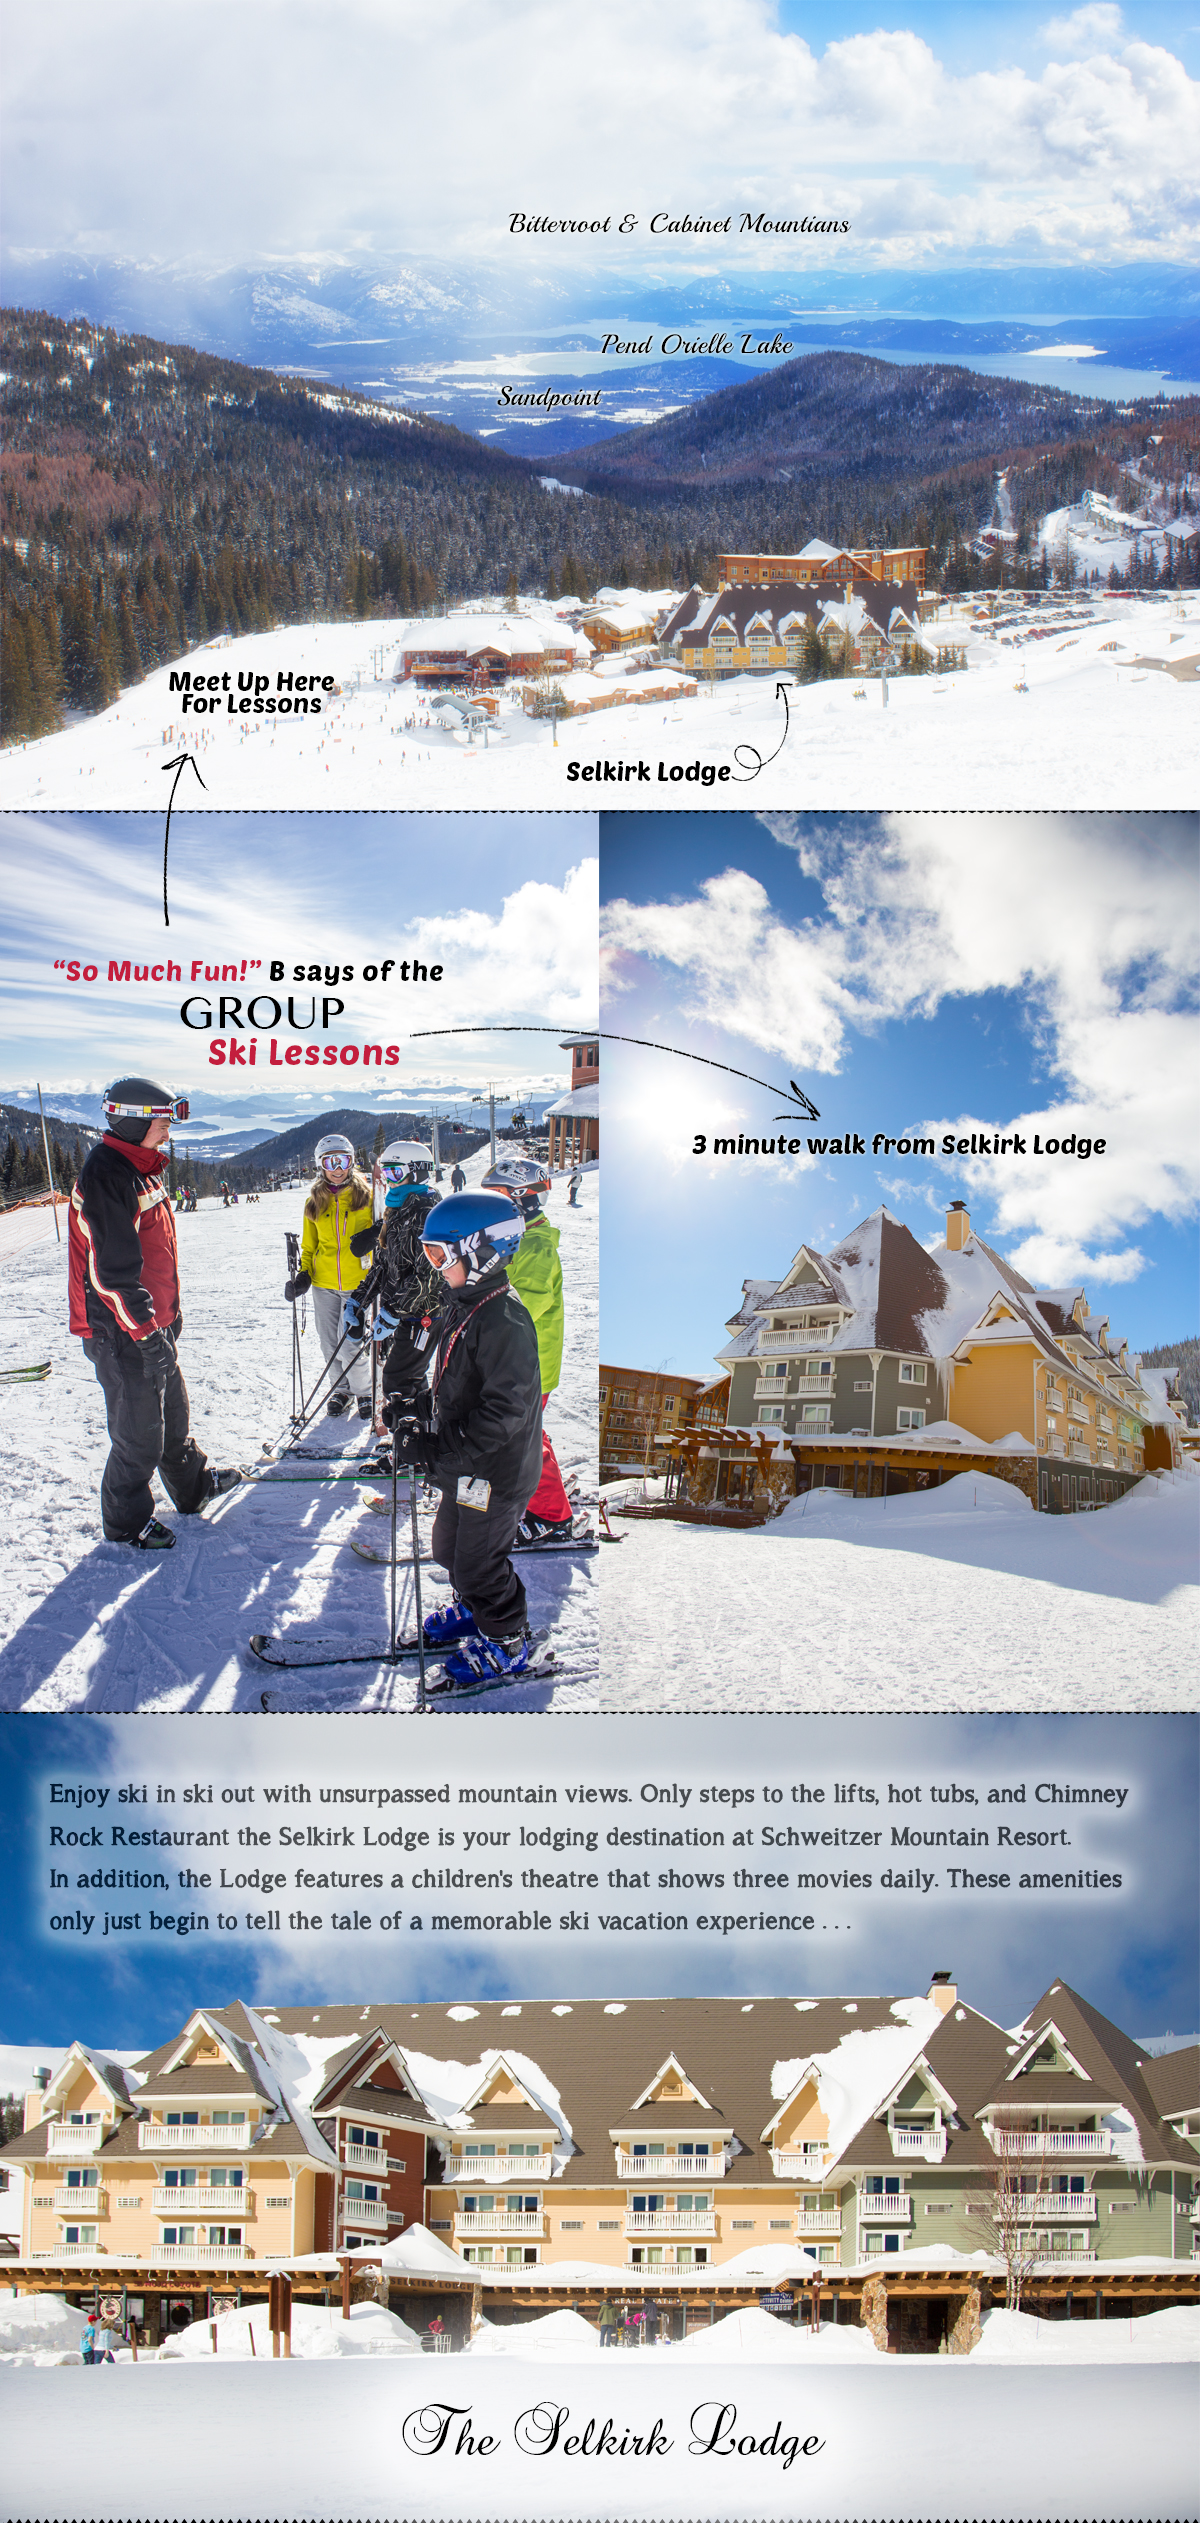 Ski Lessons at Schweitzer Mountain Resort